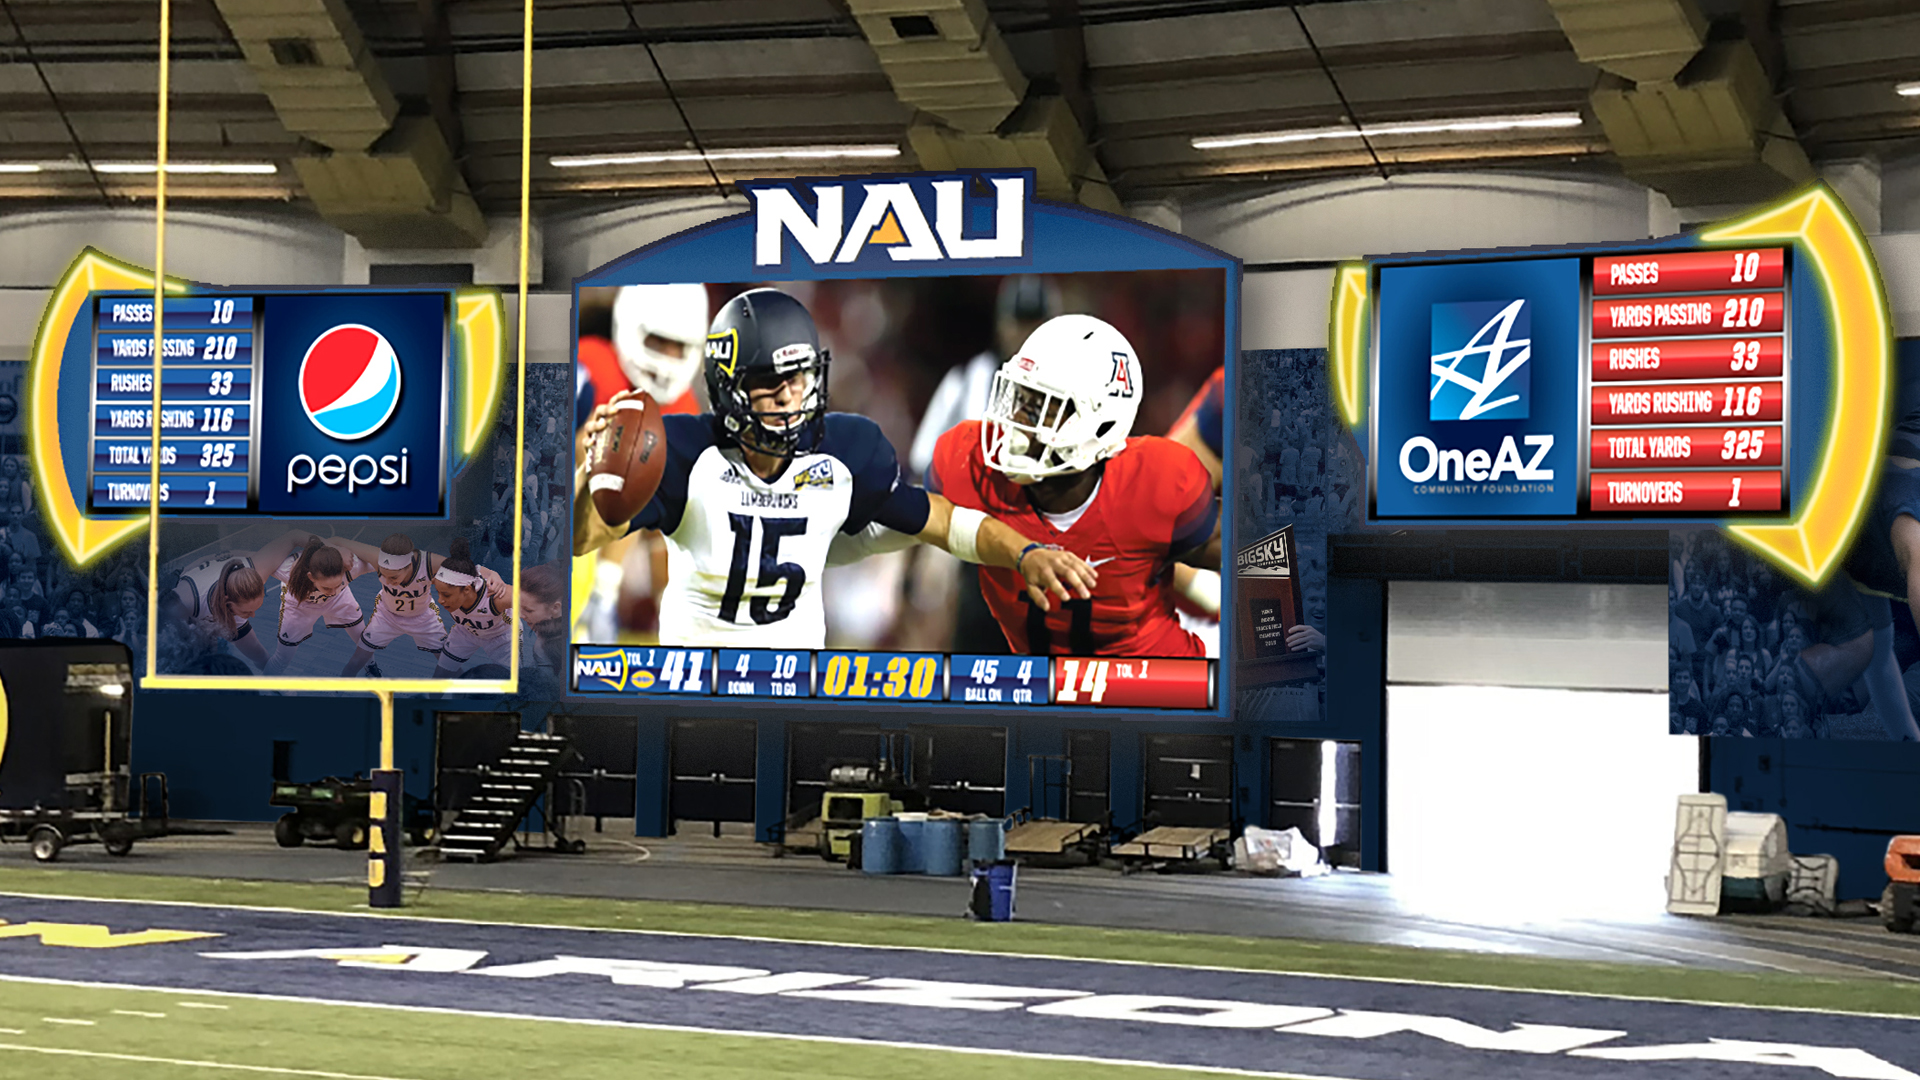 Nau Athletics To Unveil New Led Video Display At Skydome